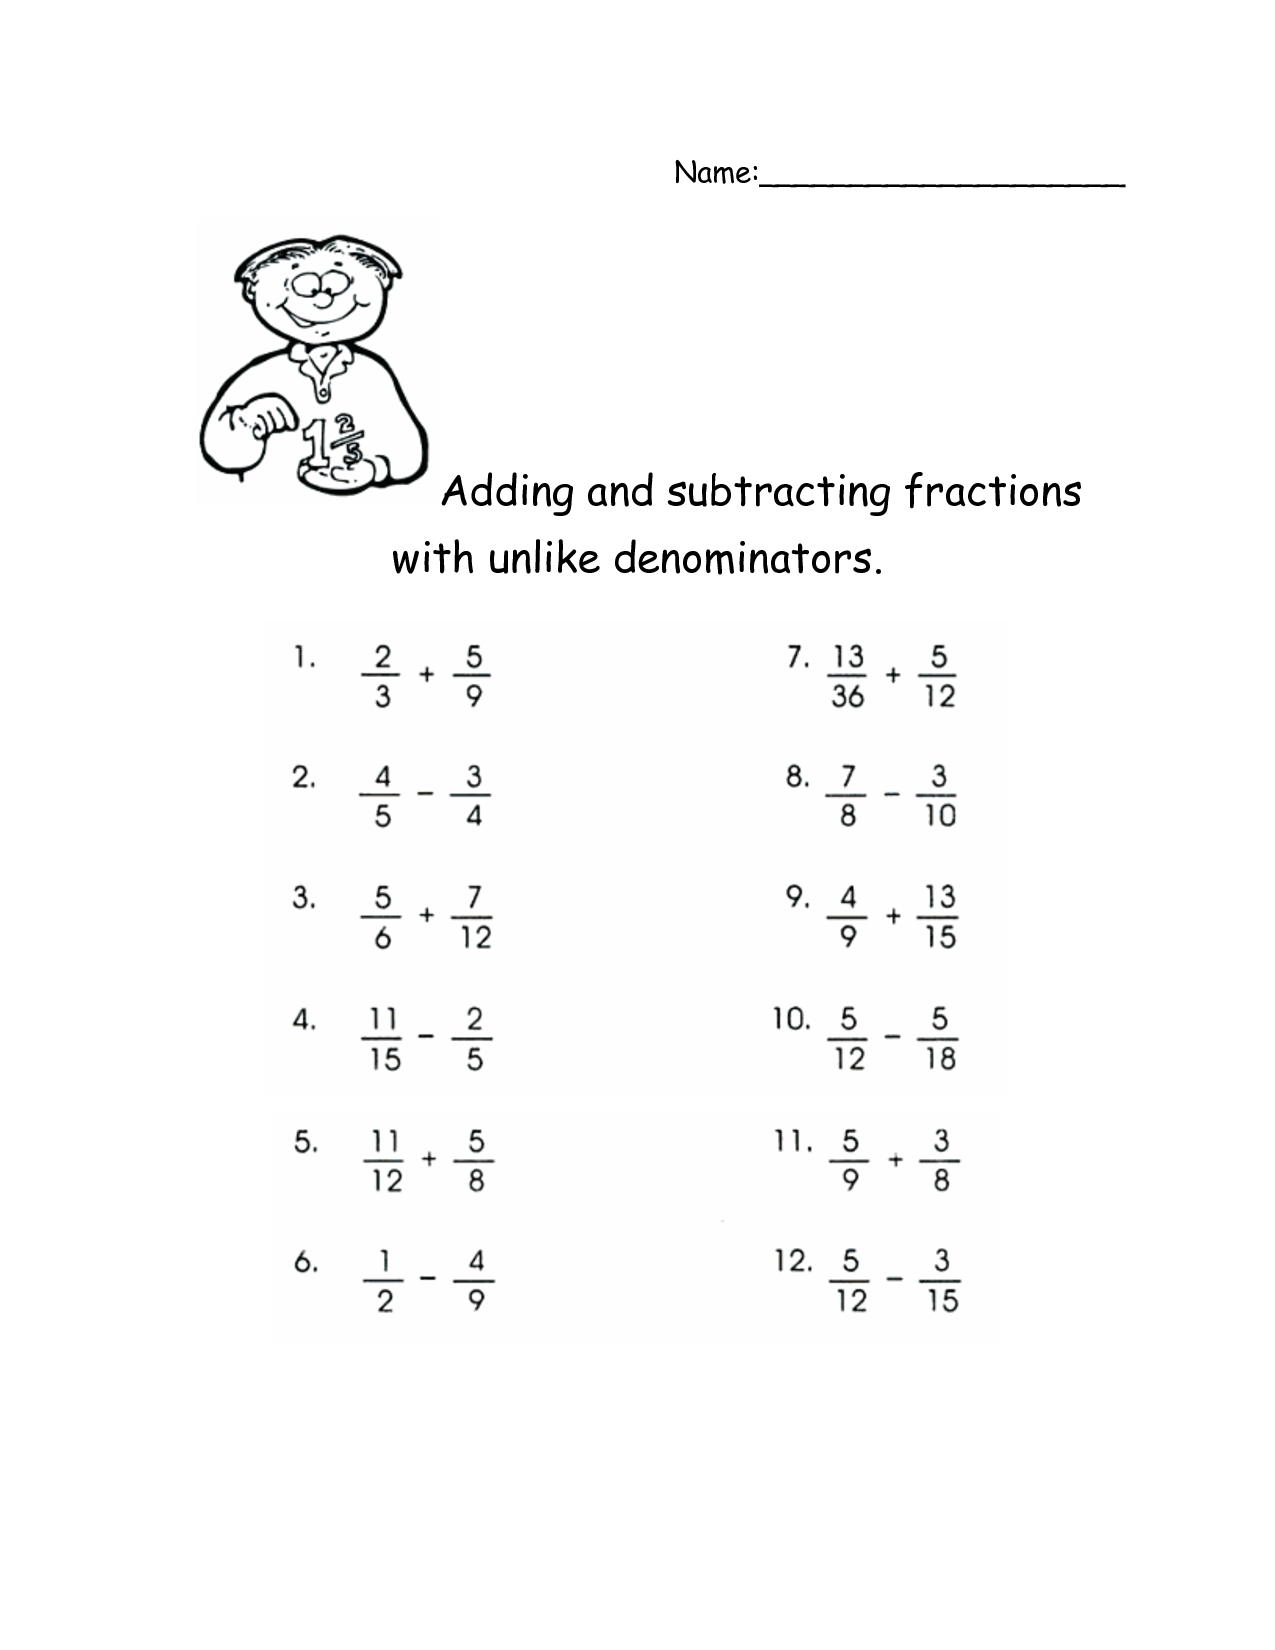 Adding And Subtracting Fractions With Unlike Denominators Activities